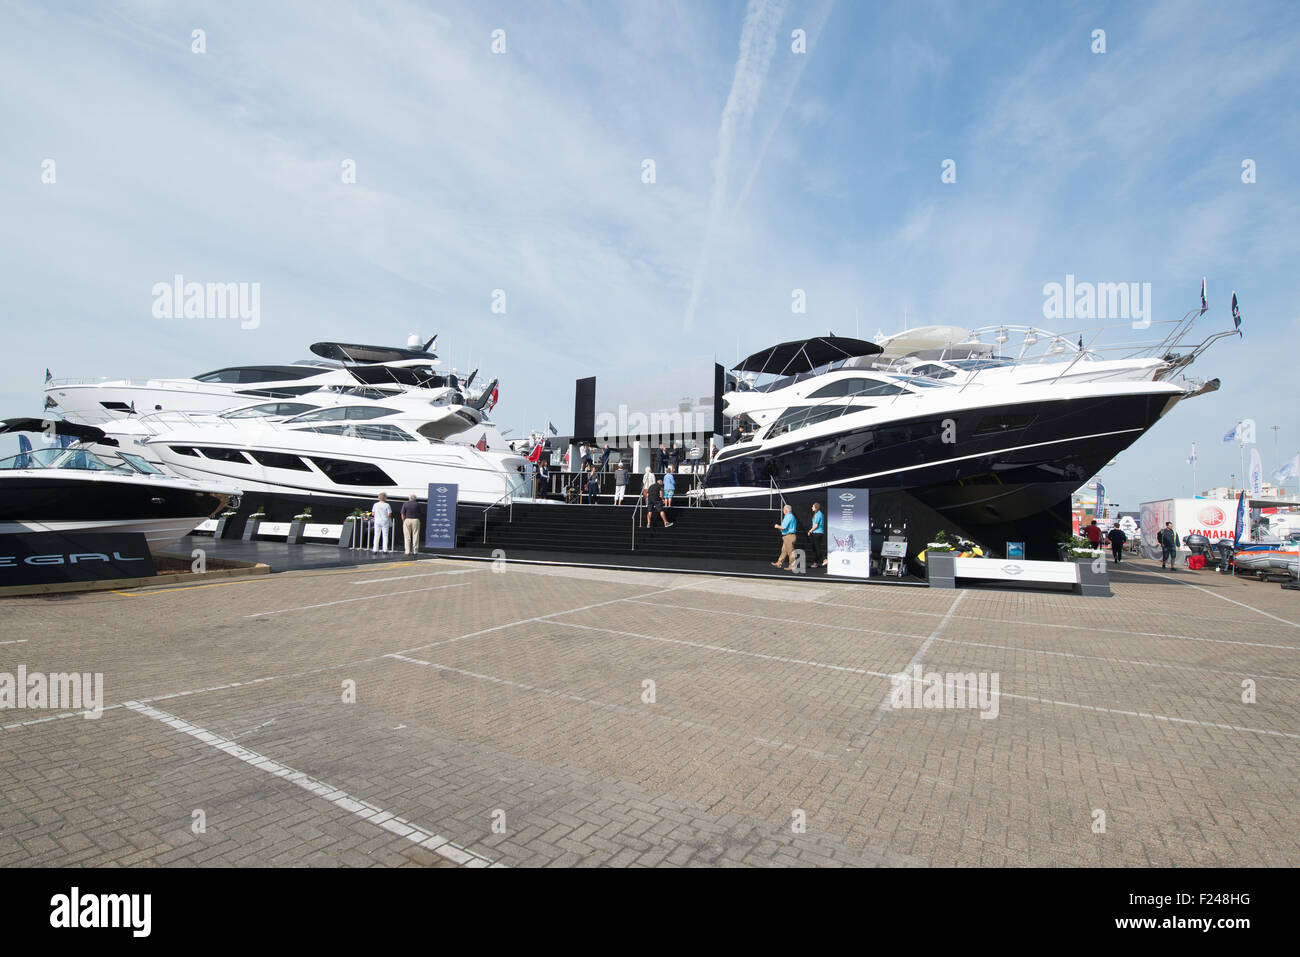 Southampton, UK. 11th September 2015. Southampton Boat Show 2015. The Sunseeker stand featured tiers of boats. Credit: Stock Photo